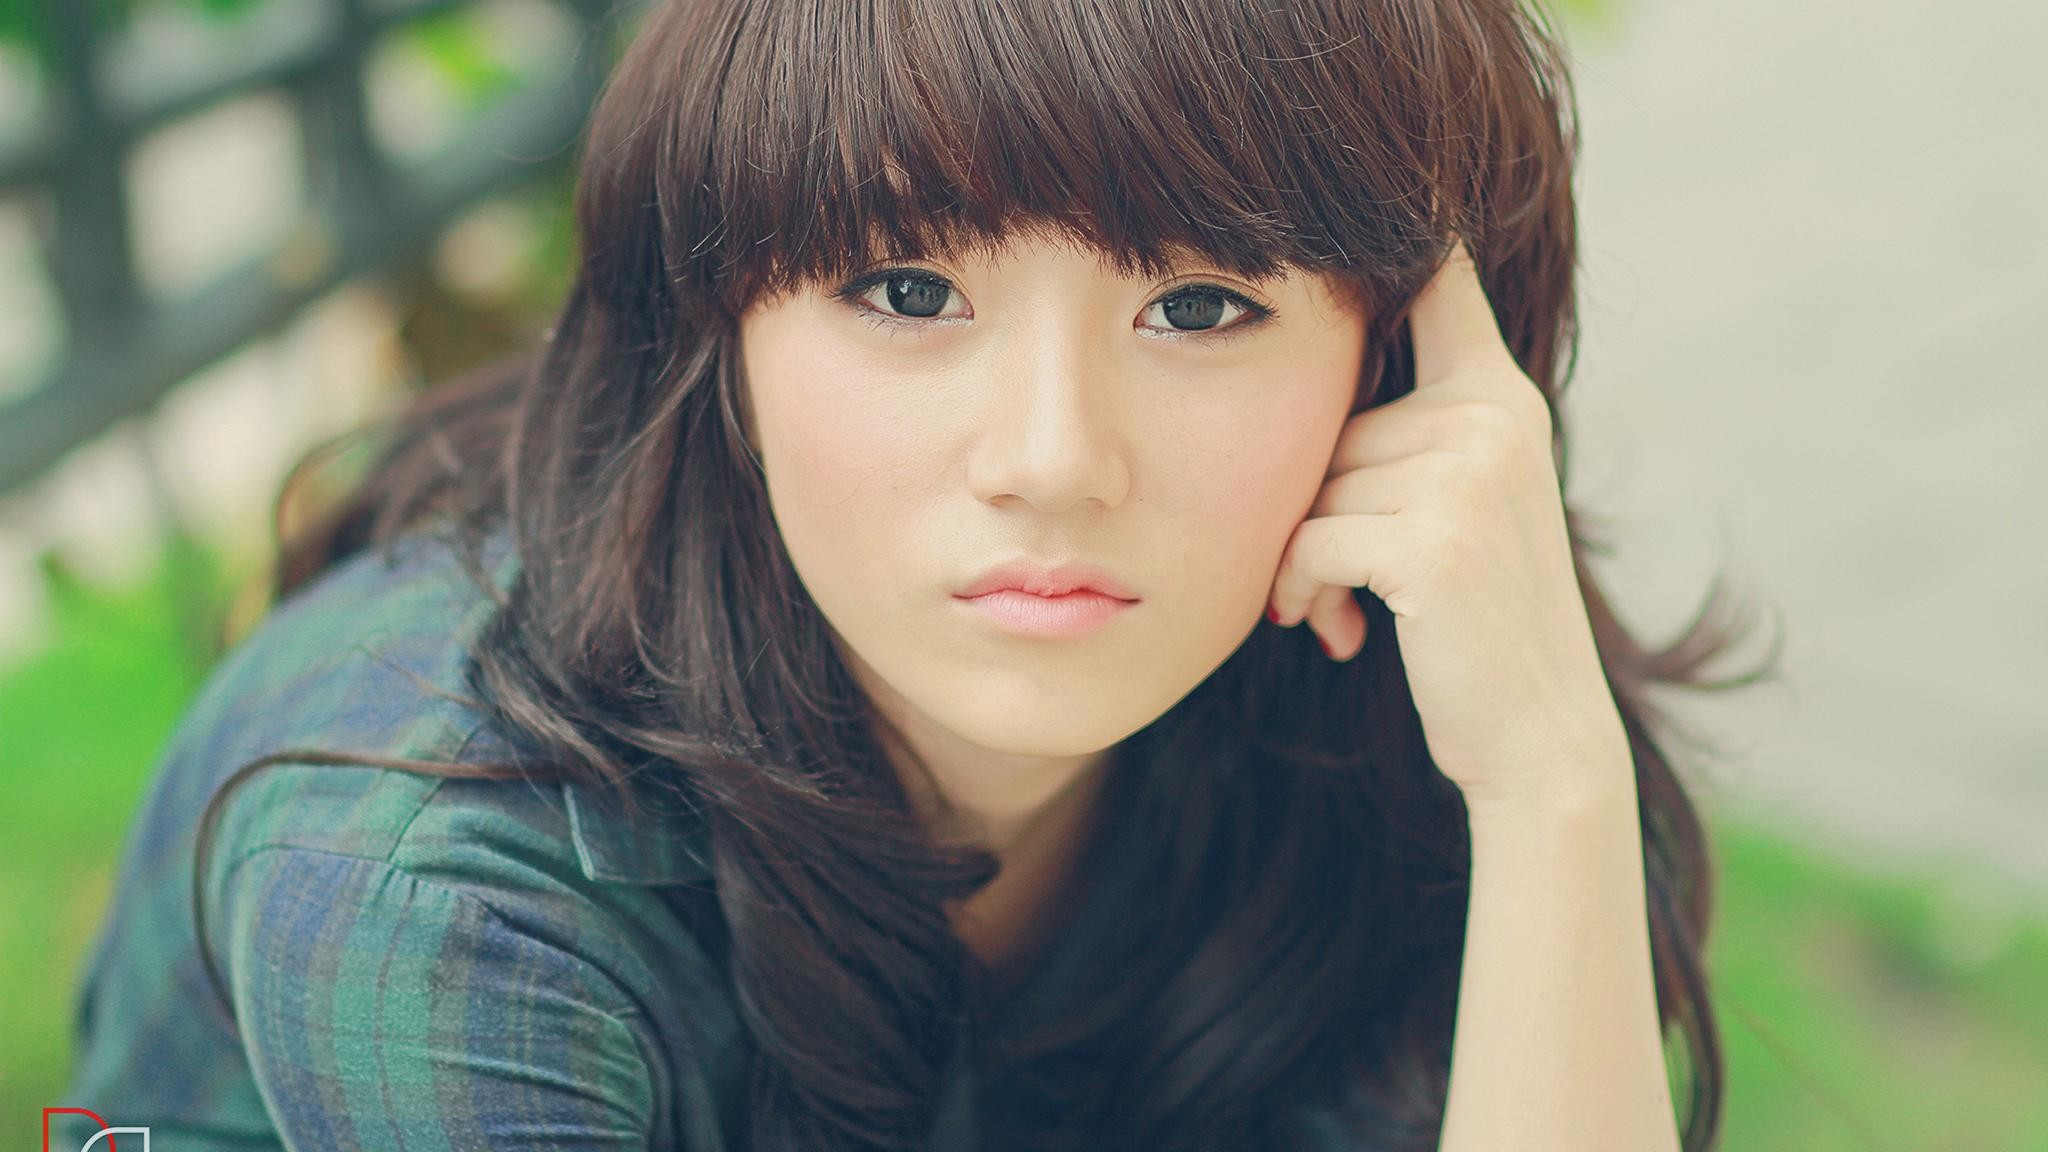 wallpaper.wiki-Free-Download-Cute-Asian-Image-PIC-. VN teen girls wallpapers  collection